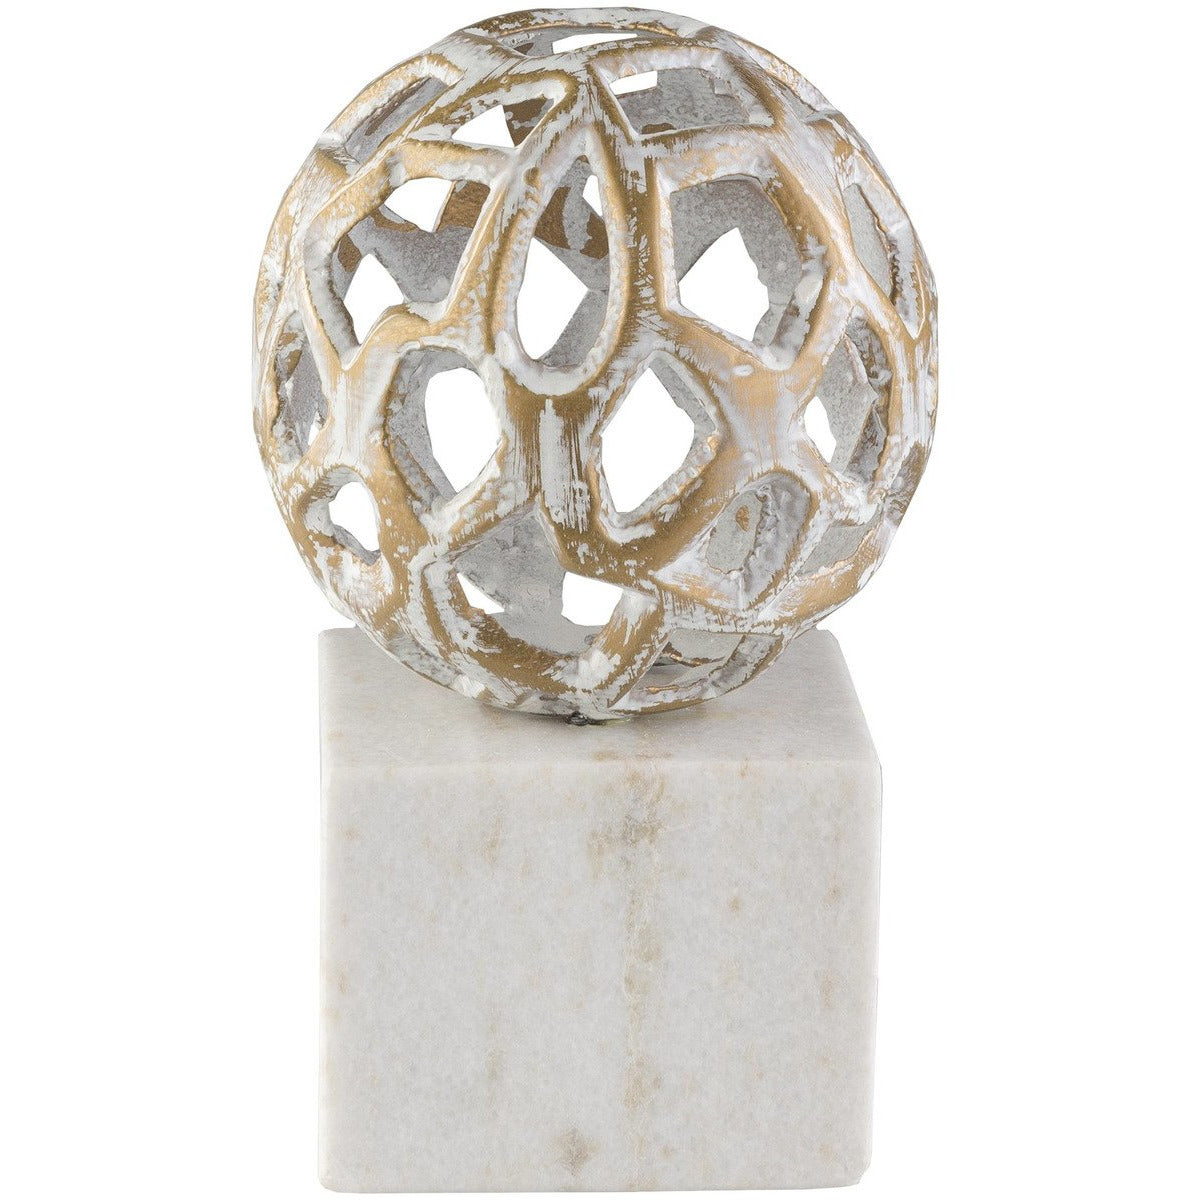 Decorative Objects - Orb ORB-001 Decorative Sculpture